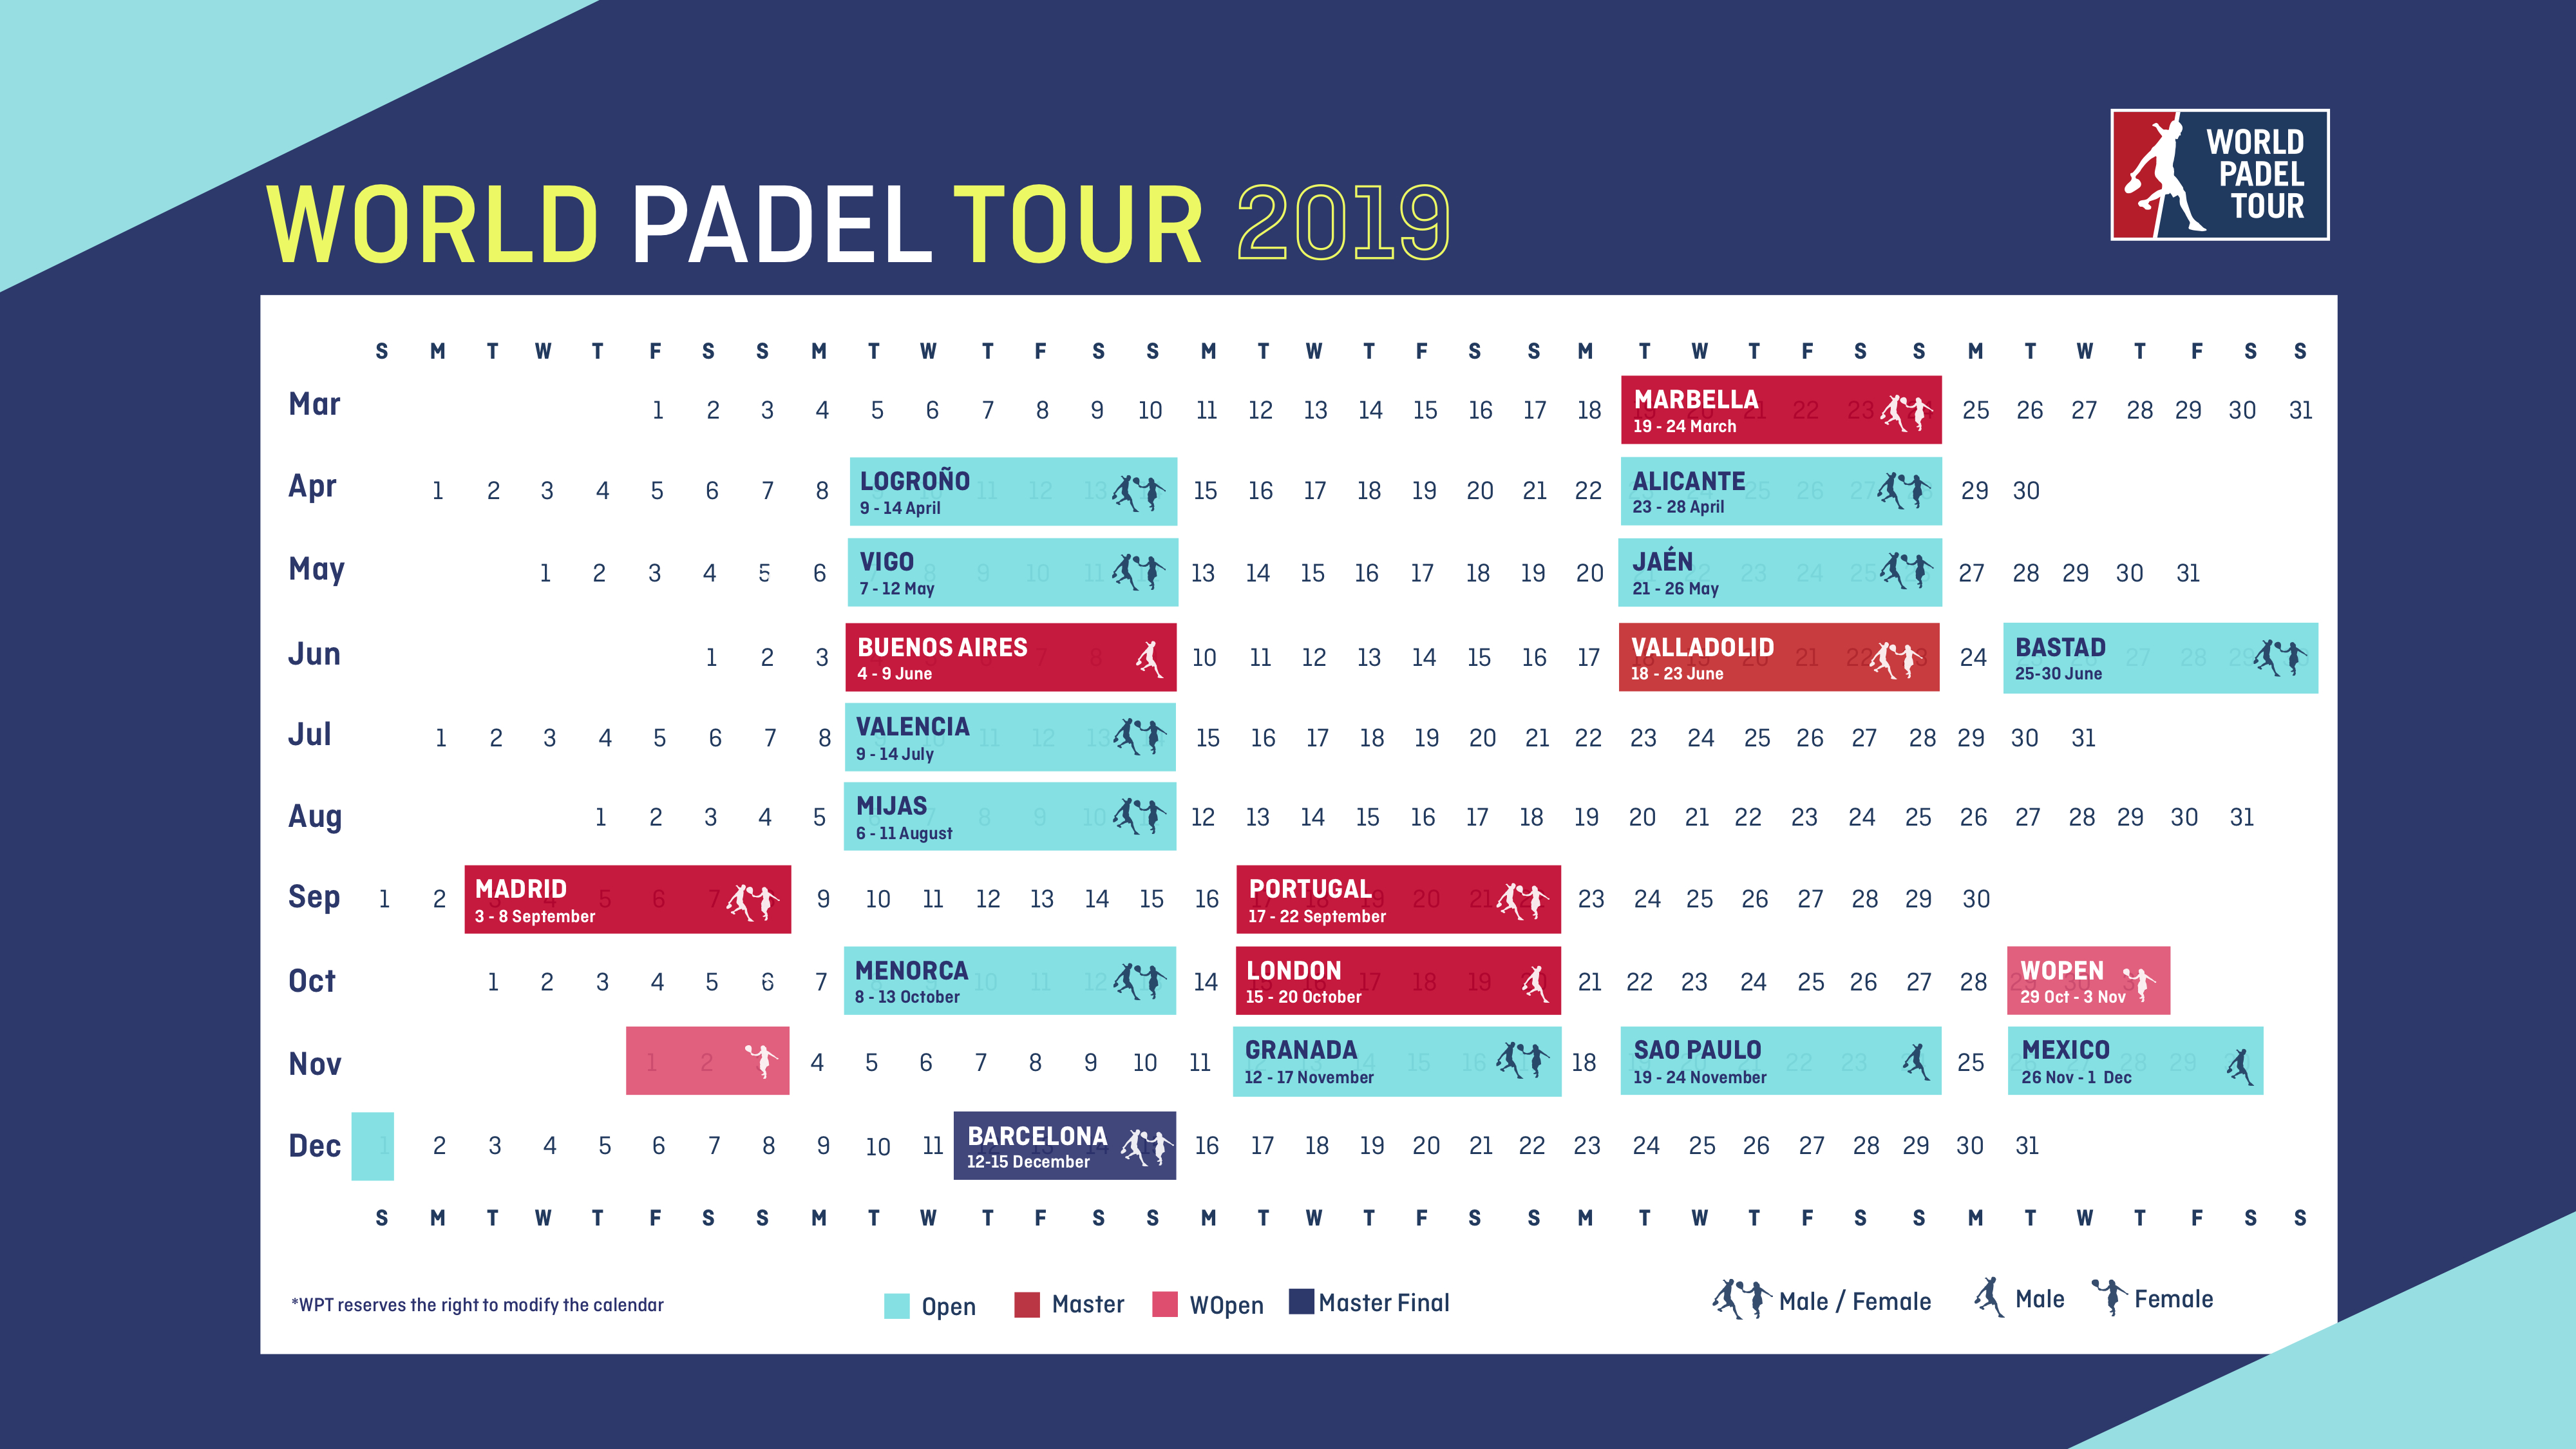 Wpt Calendario.The 2019 Season Will Be The Most International In The History Of